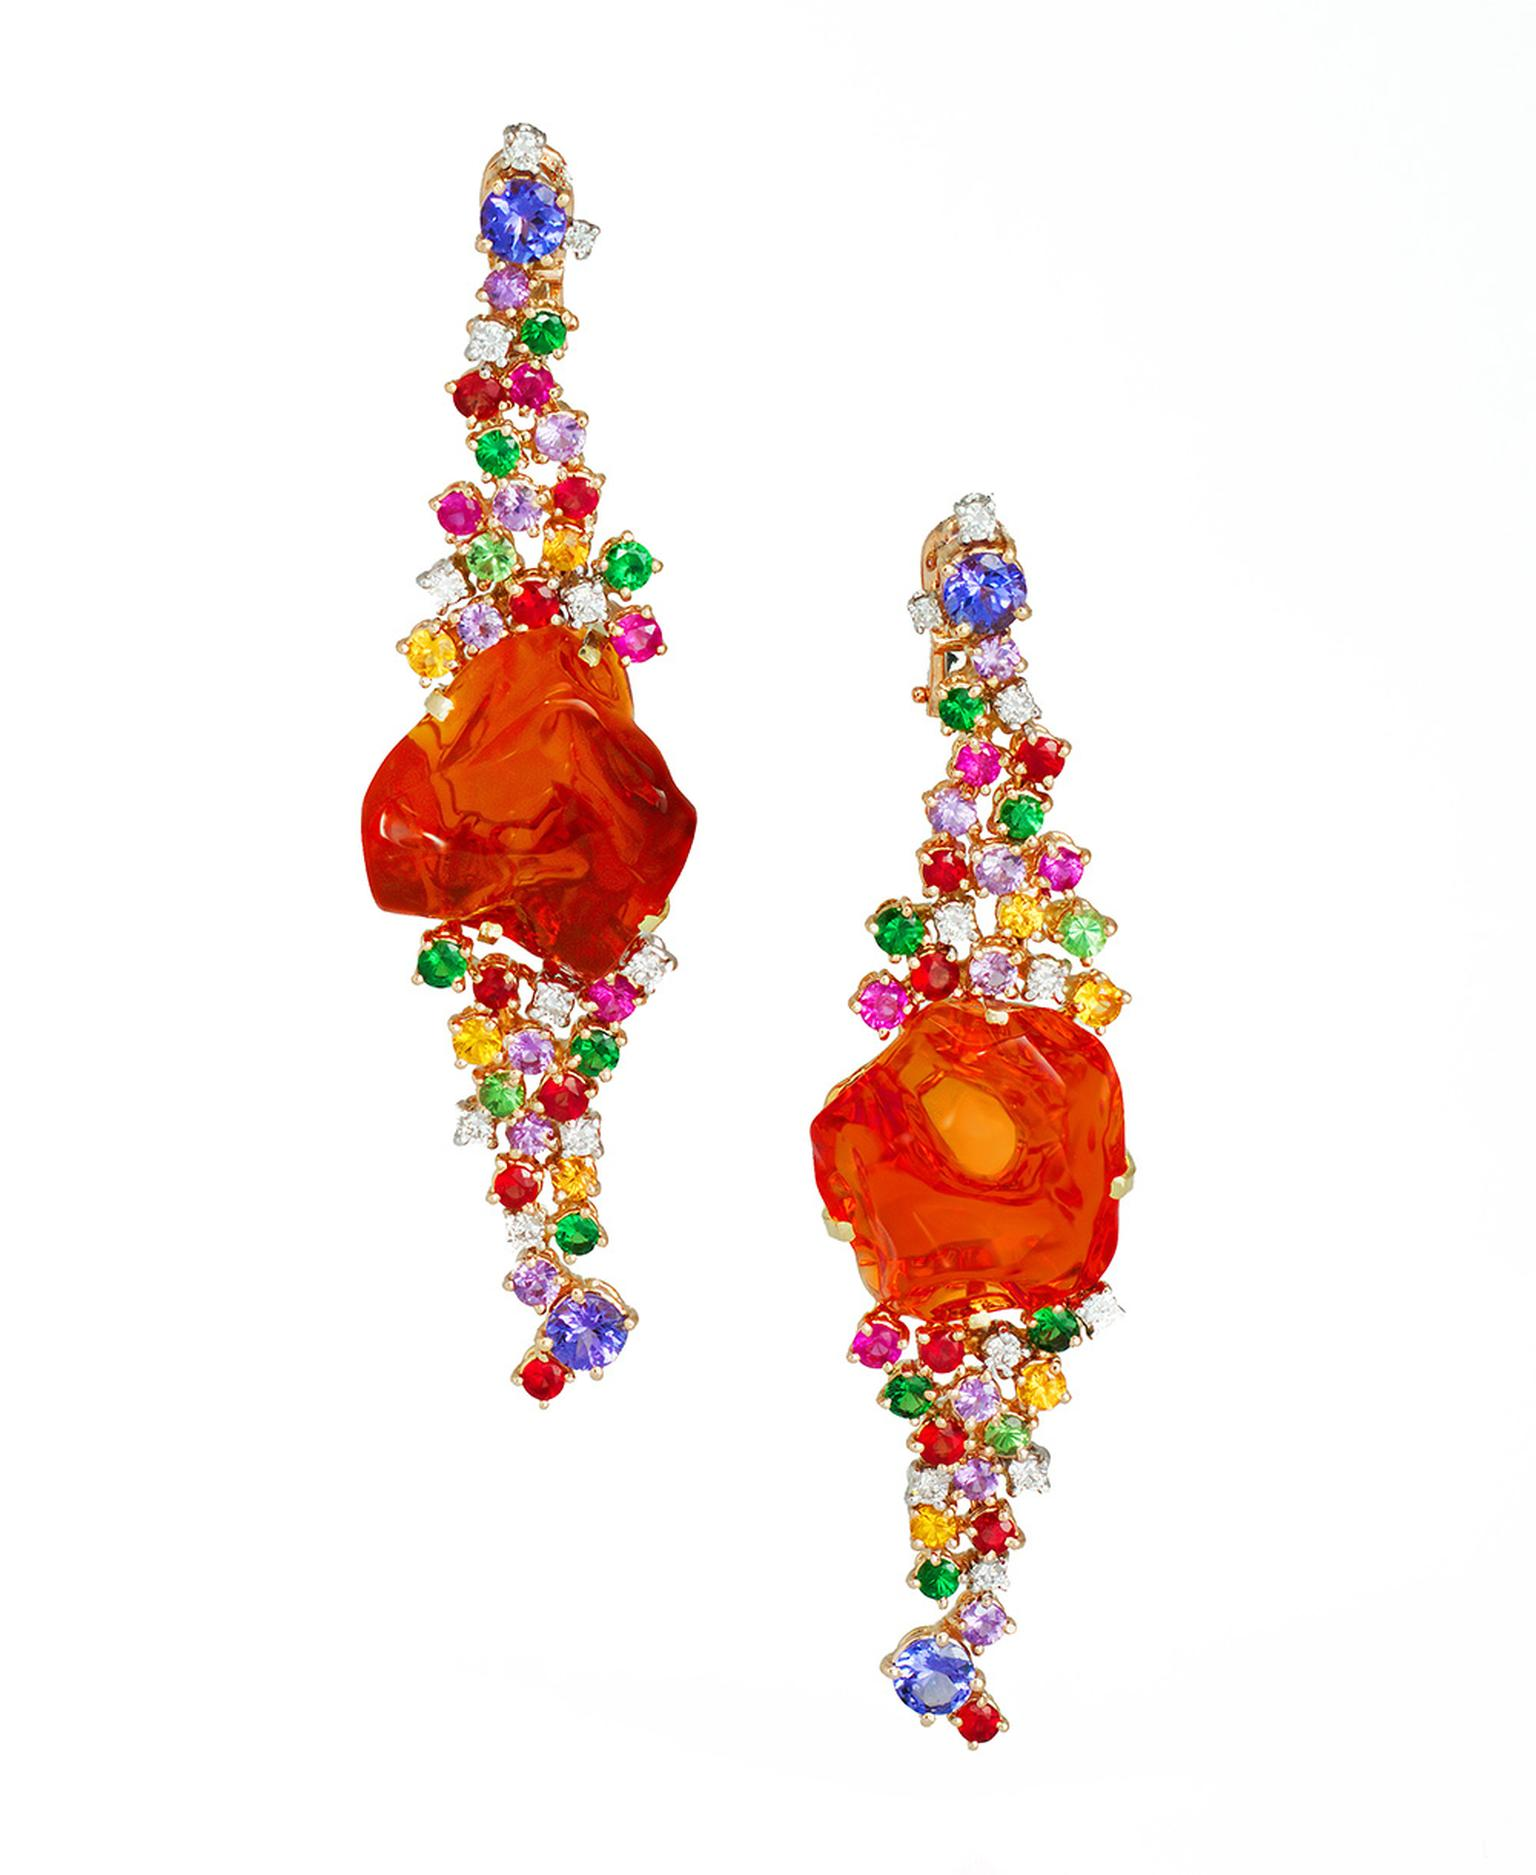 Fire opal jewellery glows with an inner fire saturated with every hue of red and orange